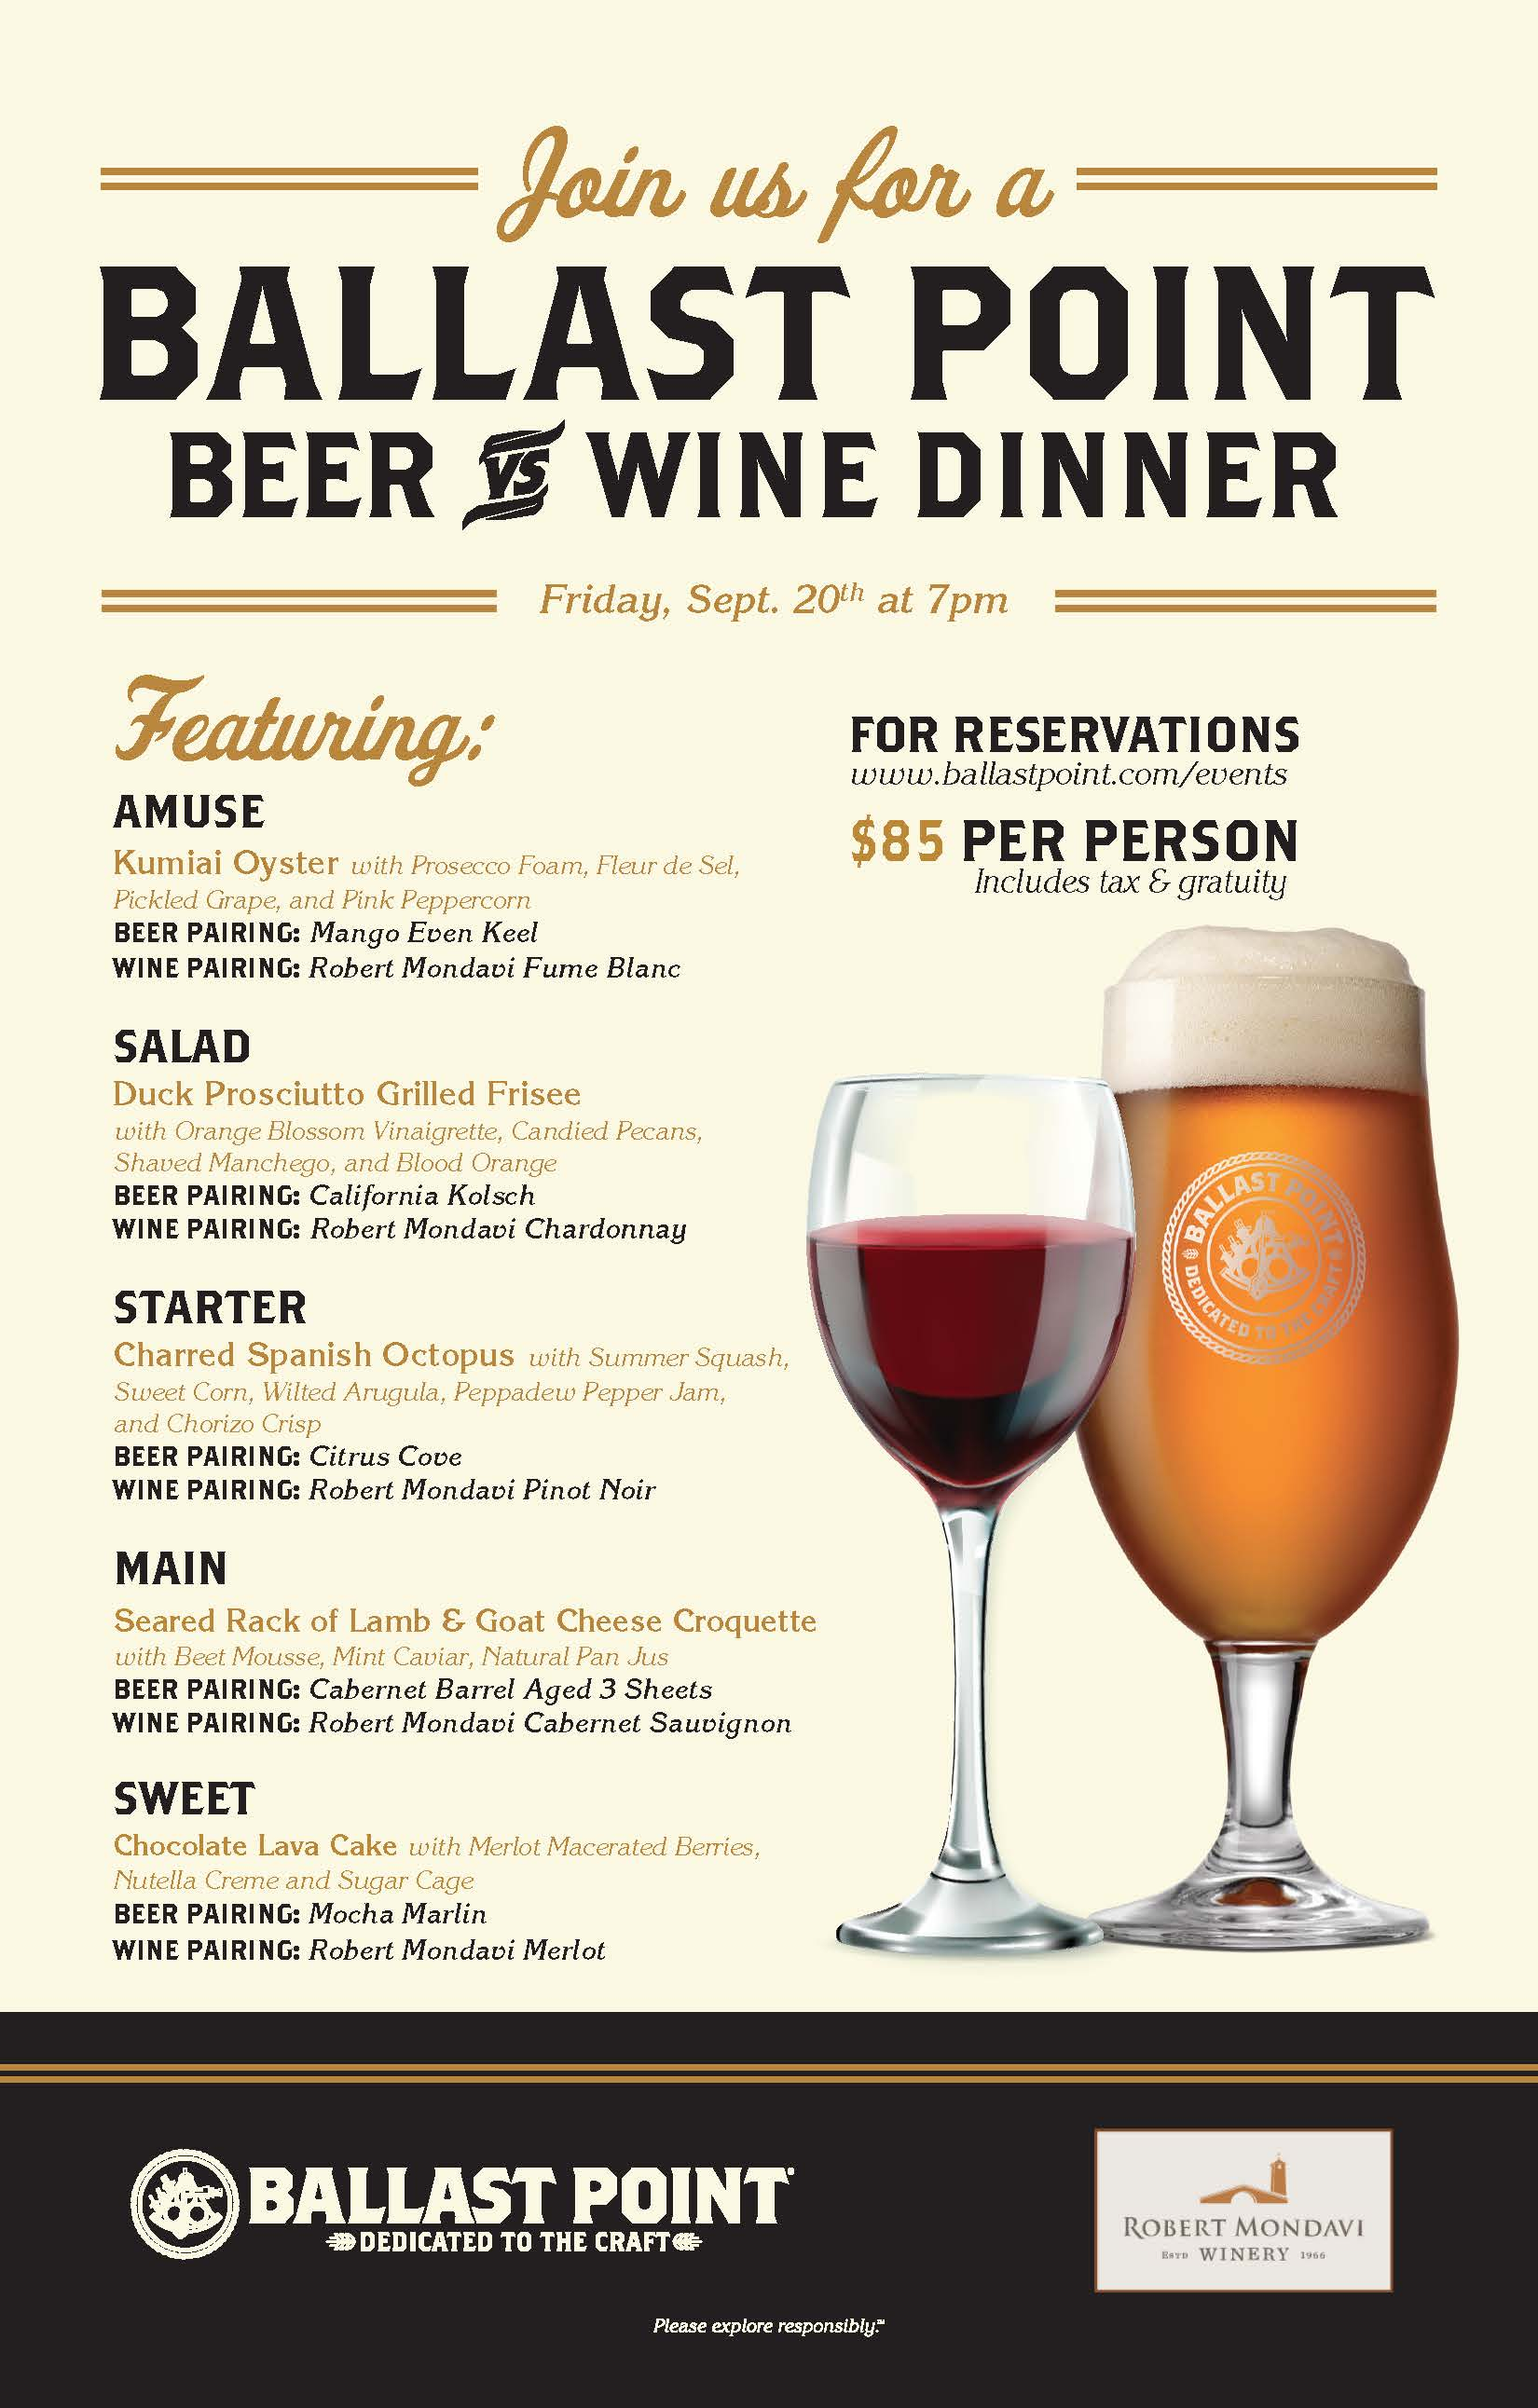 Ballast Point Beer vs Wine Dinner - Miramar THUMBNAIL